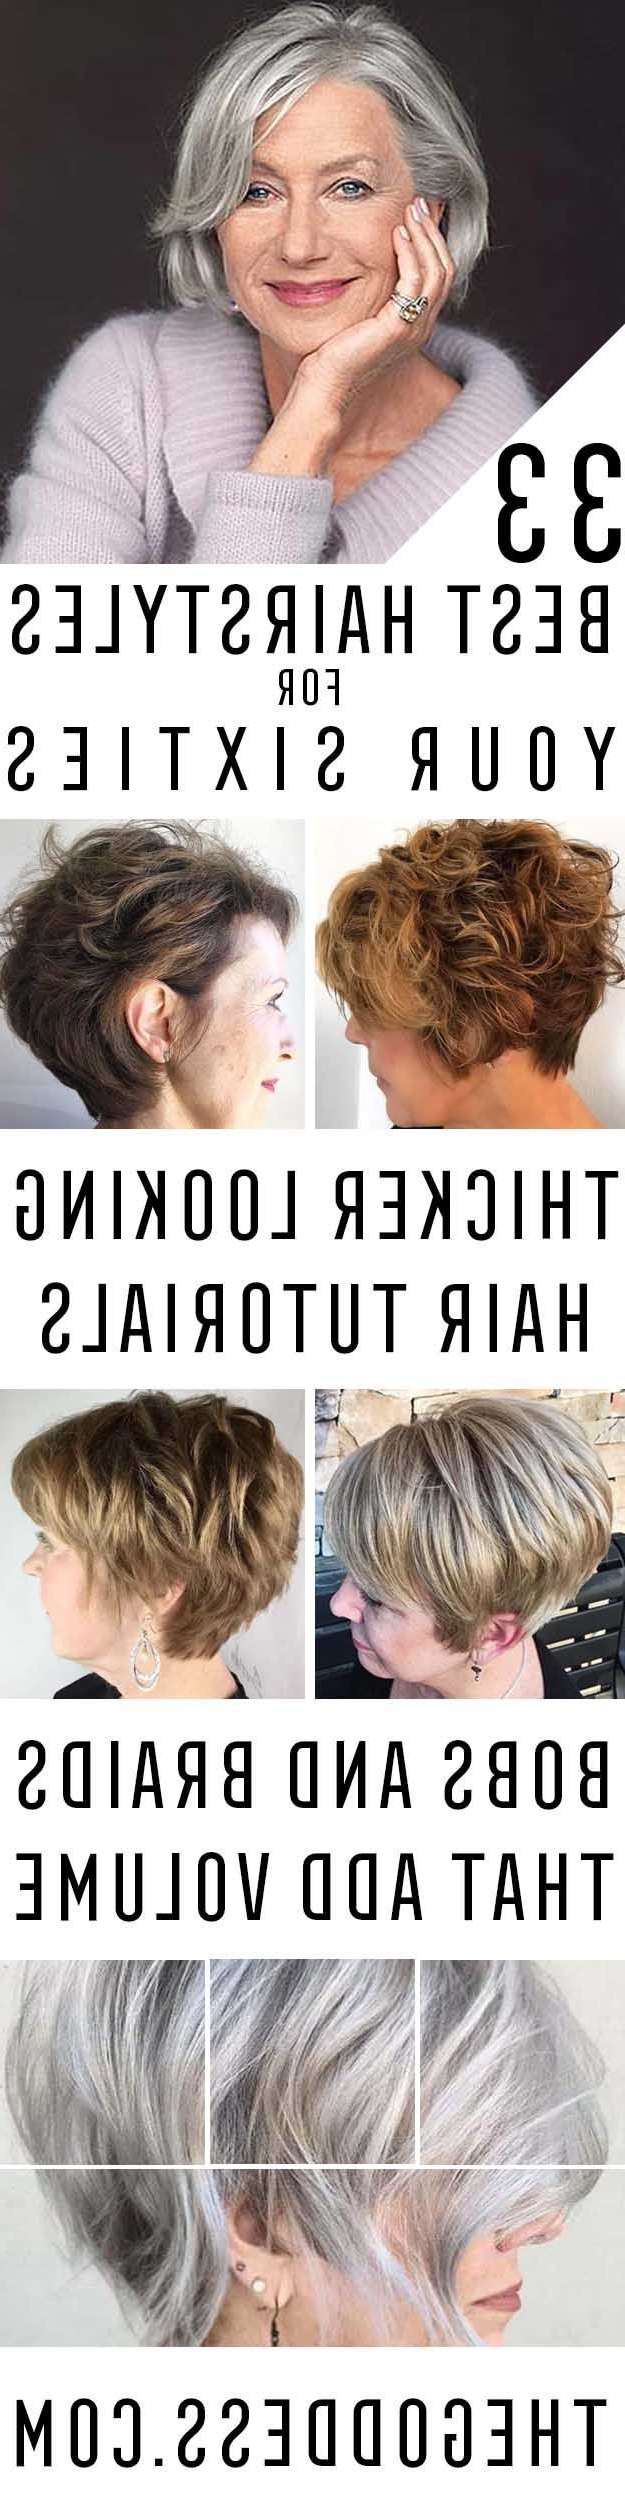 Short Hairstyles For Women Over 60 Years Old With Fine Hair Regarding Short Haircuts 60 Year Old Woman (View 16 of 25)